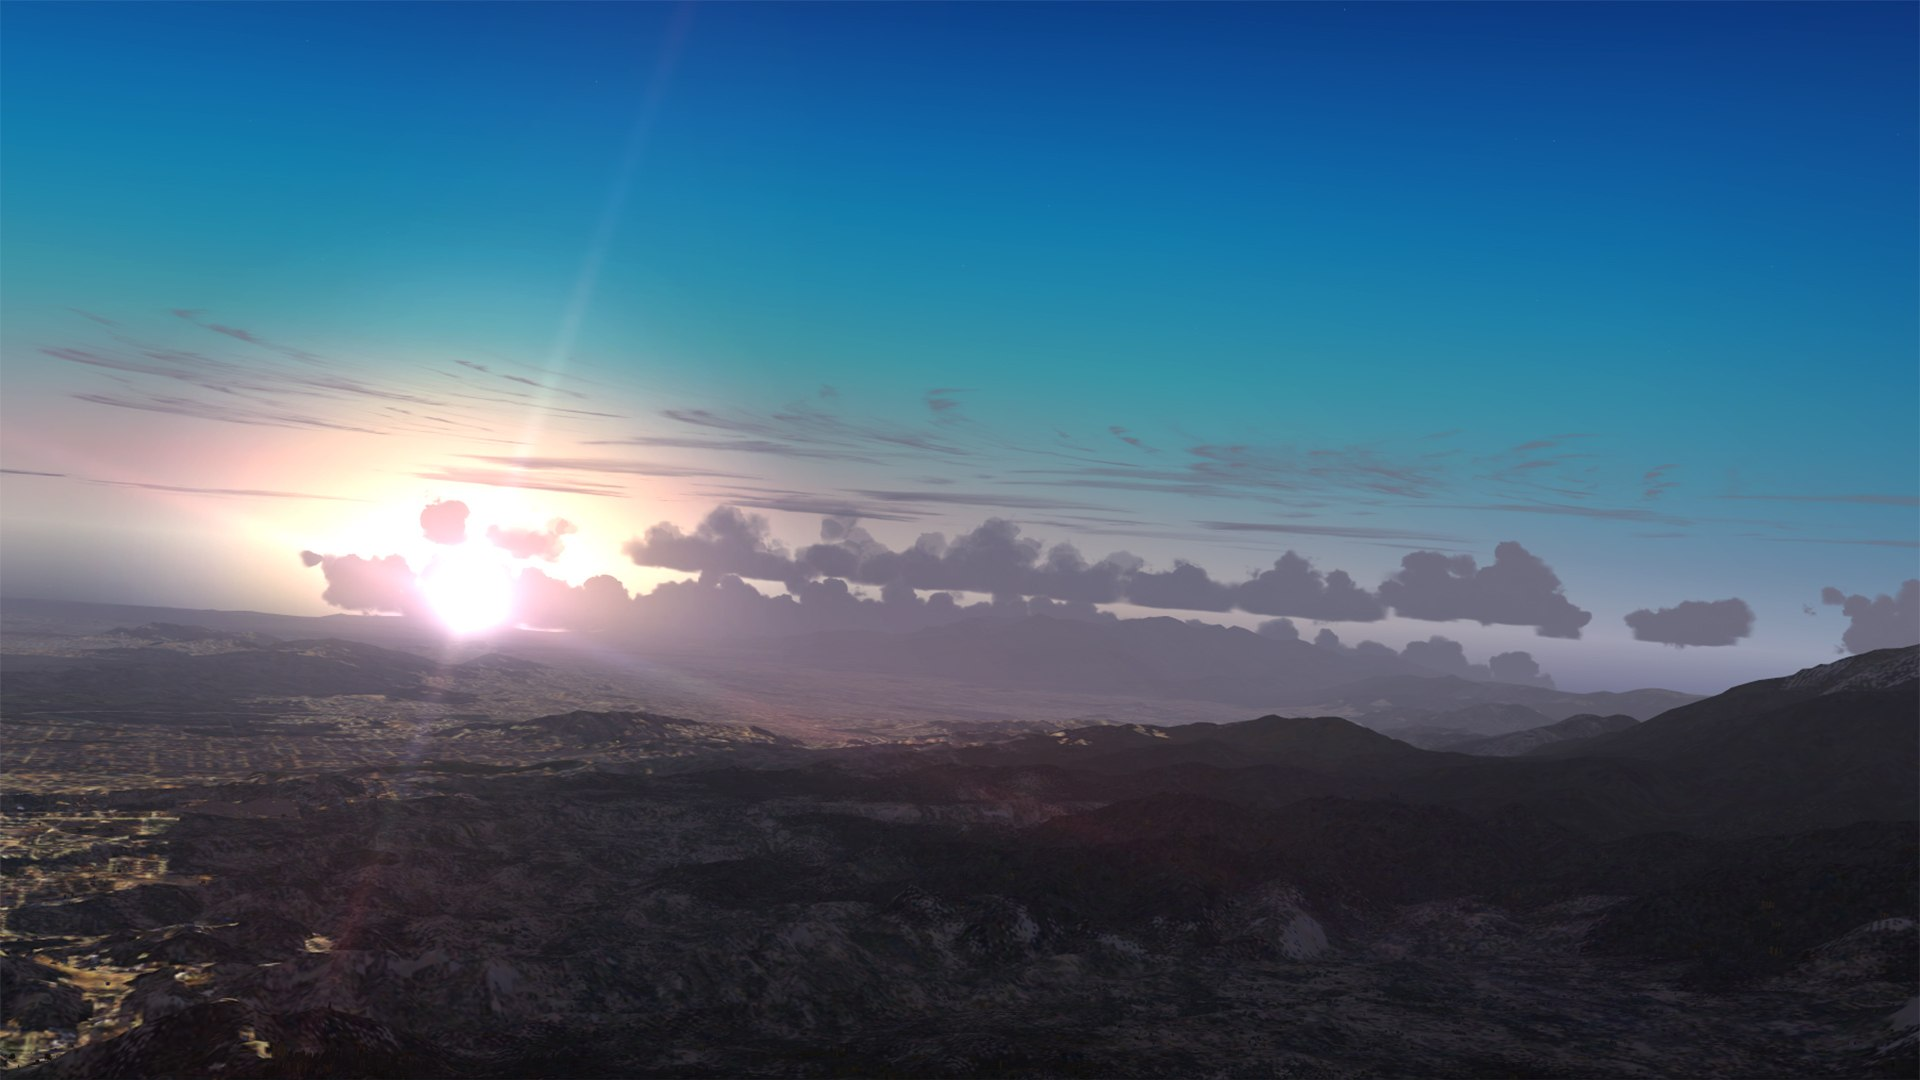 FSX Insider | Customize Your Virtual Skies With Active Sky Next!